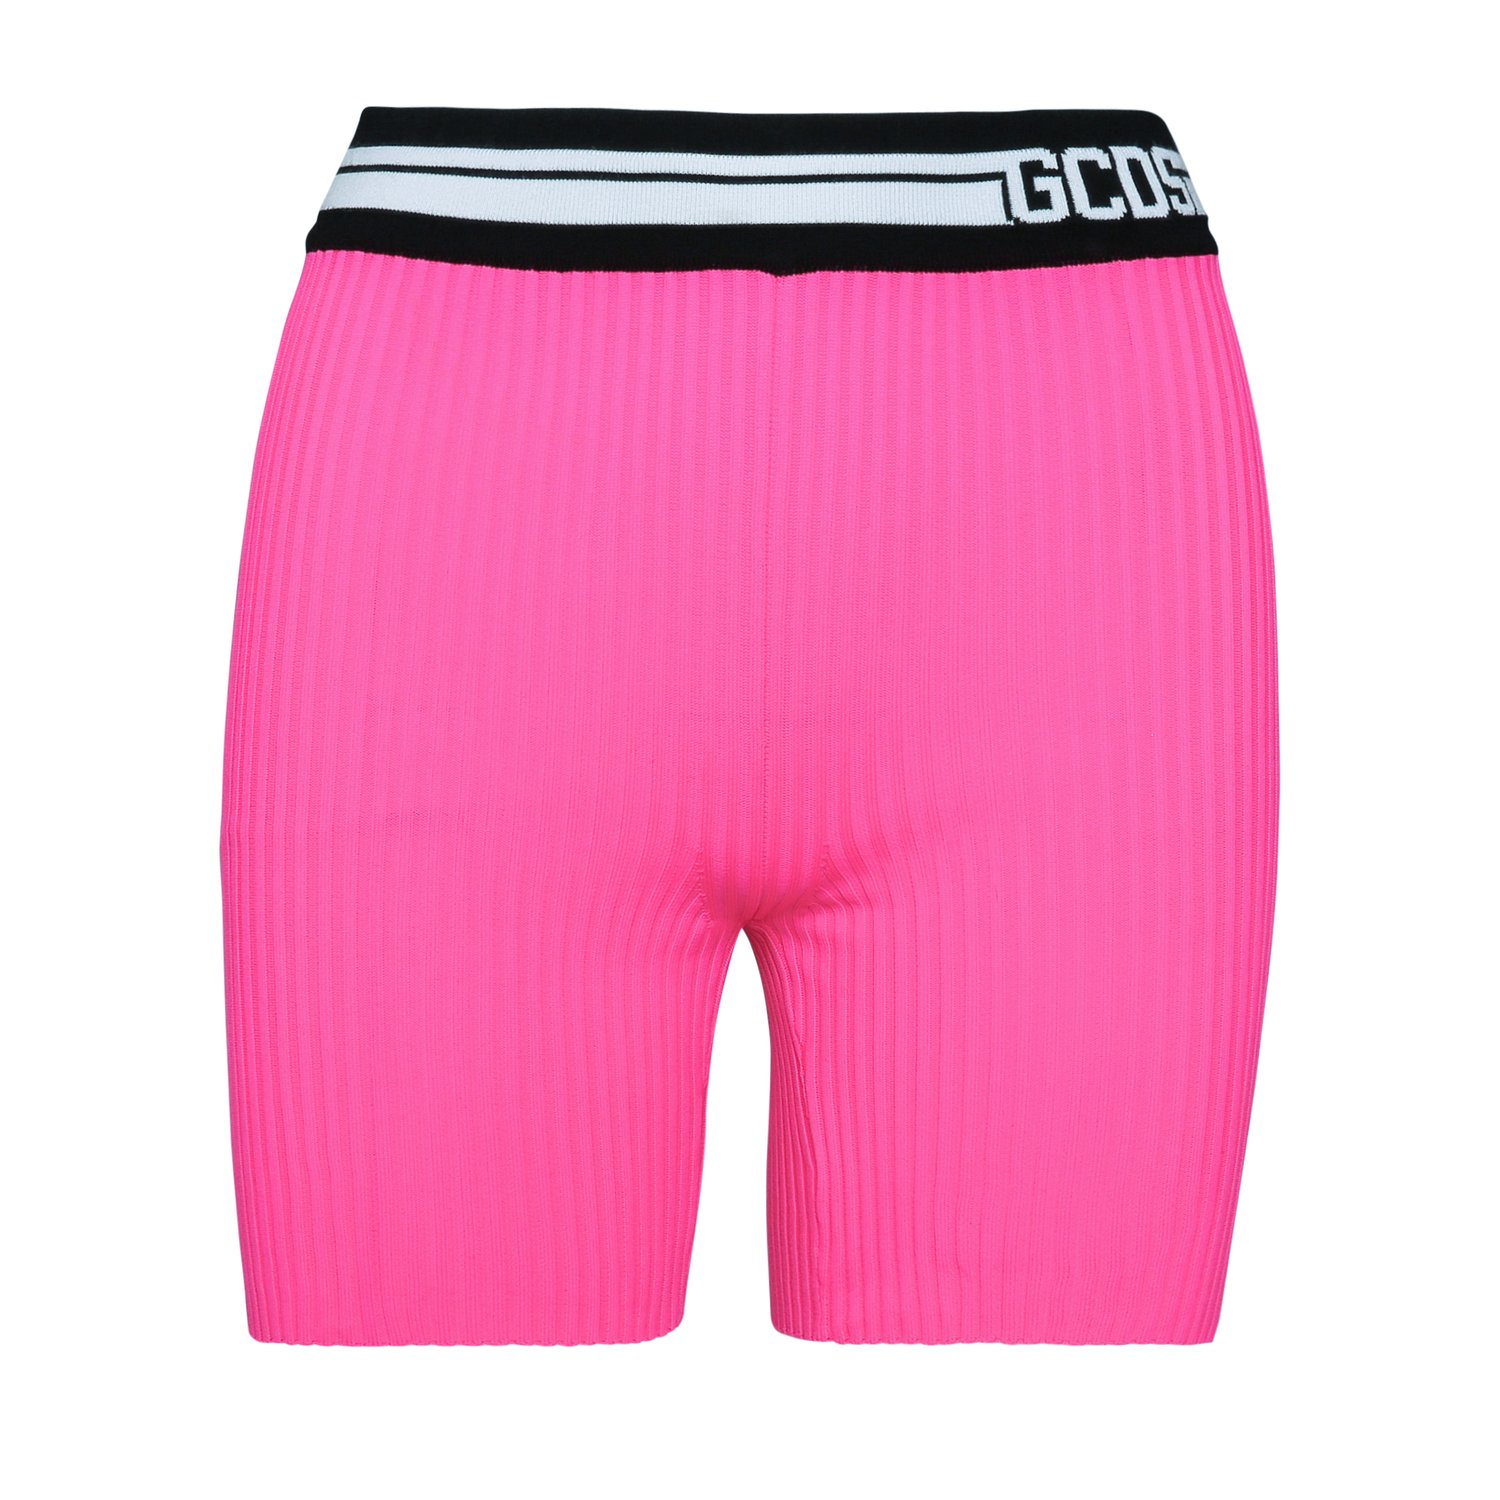 KNIT SHORTS by GCD, available on gcds.it for EUR221 Yovanna Ventura Shorts Exact Product